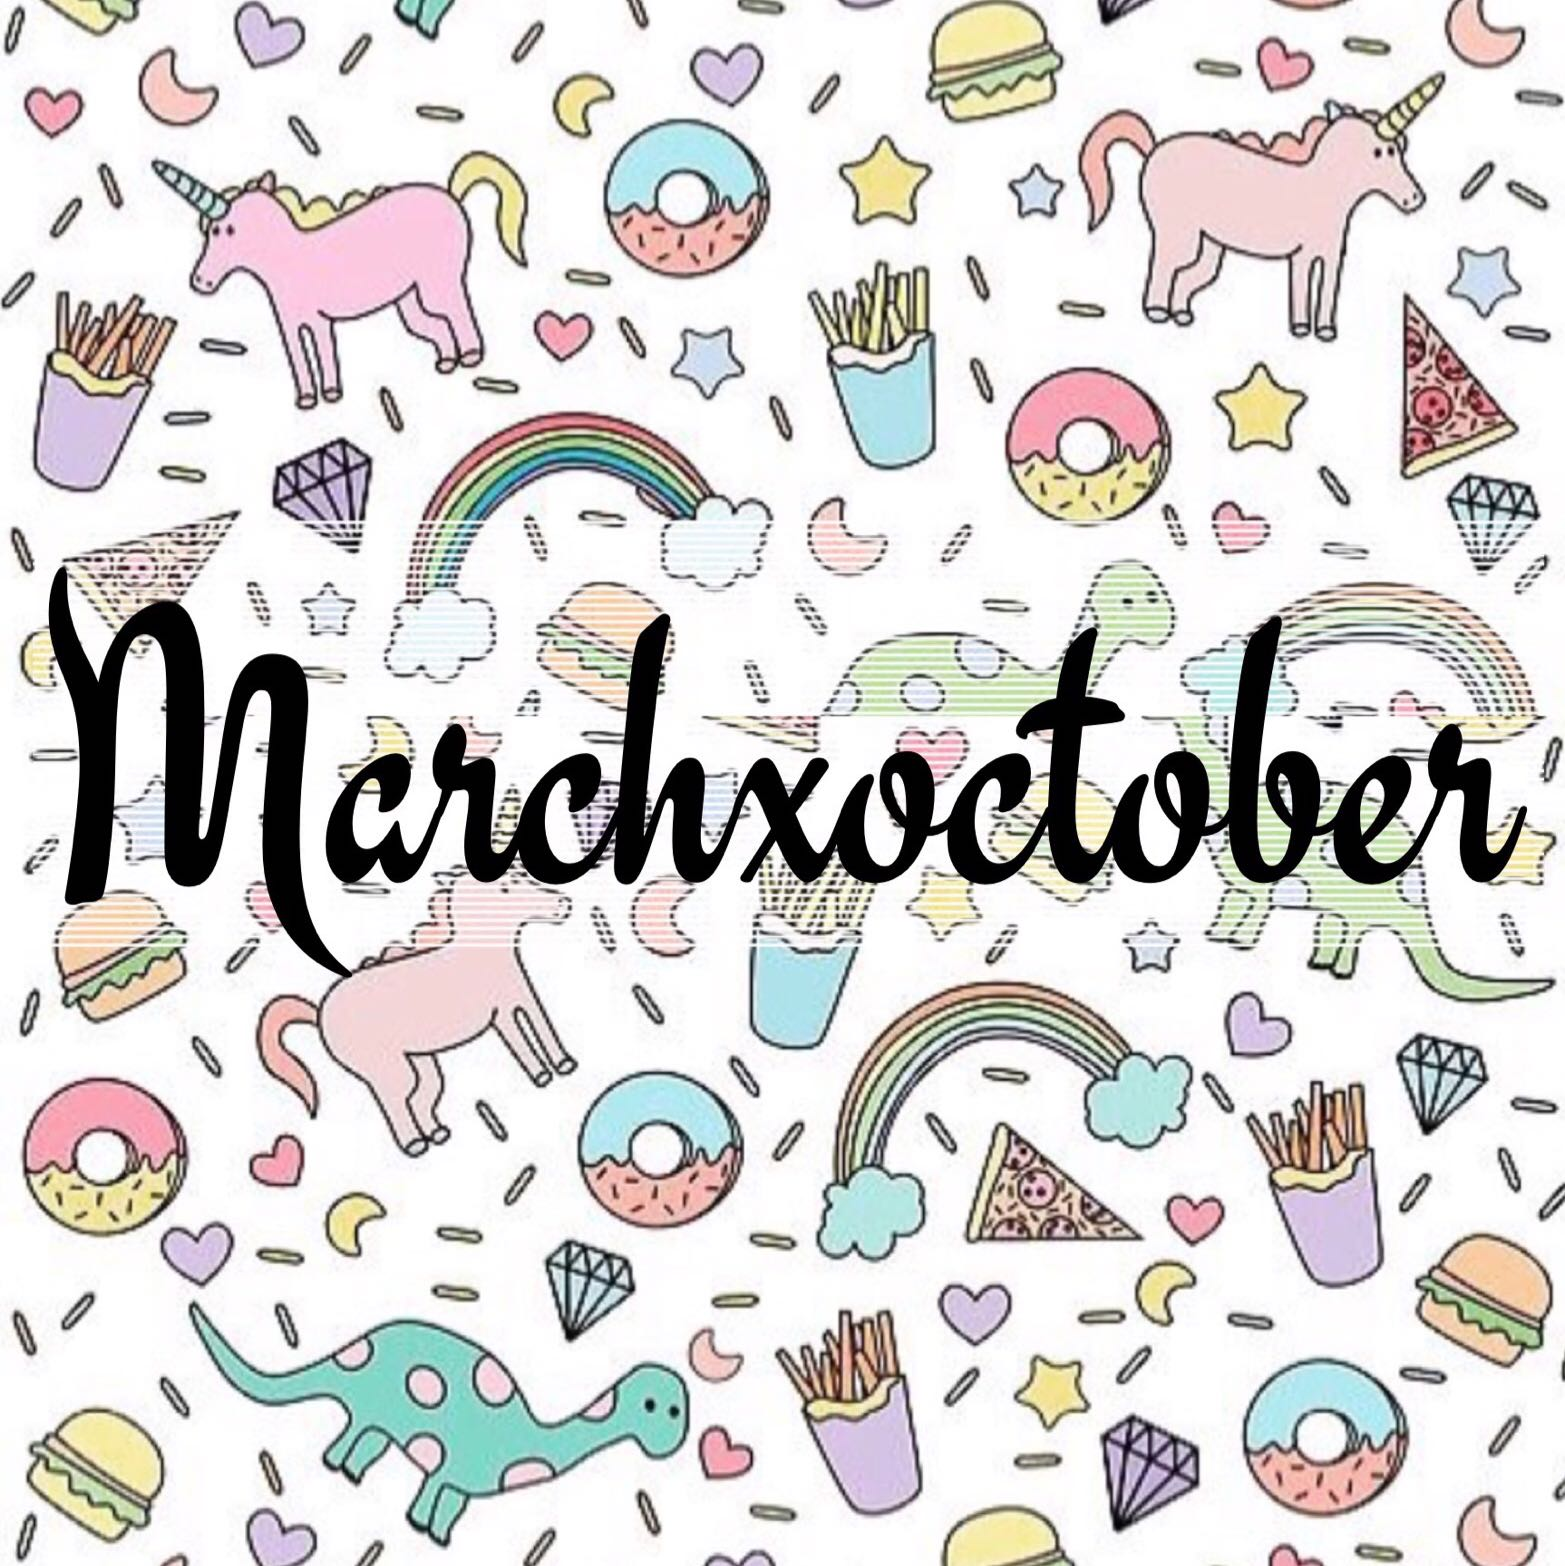 marchxoctober